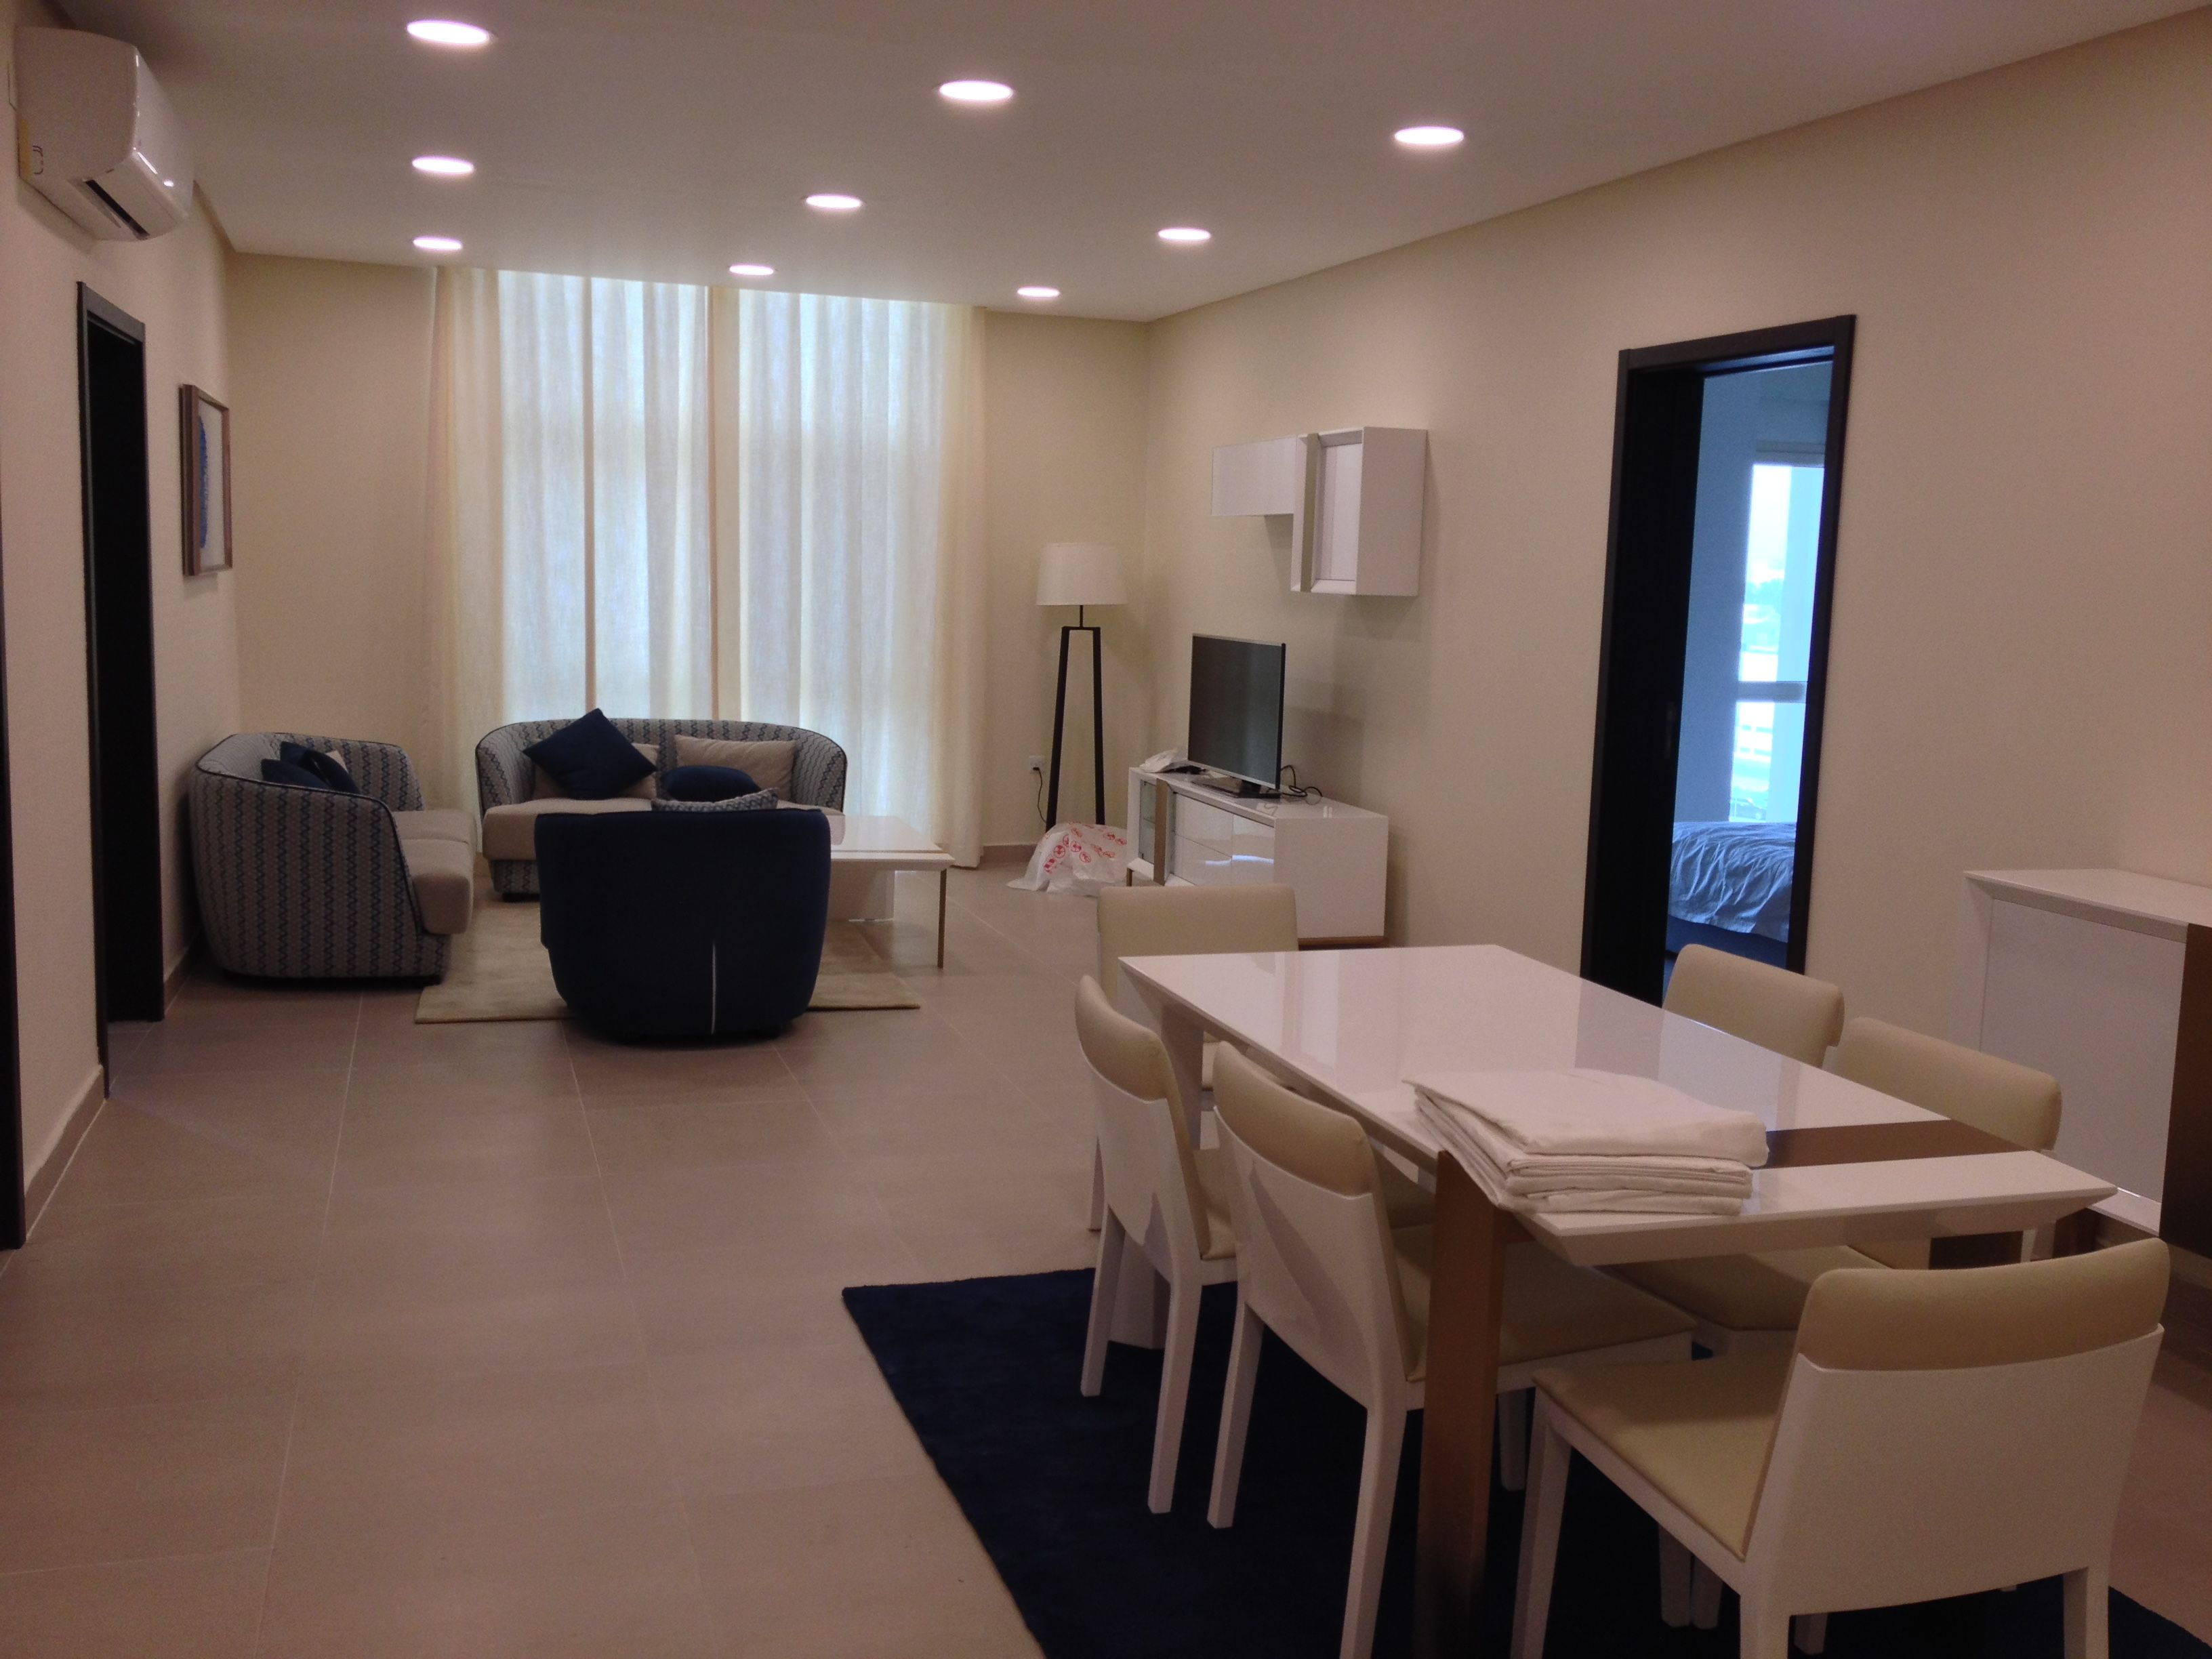 Bahrain Apartment For Rent In Adliya One Bedroom Flats And Two